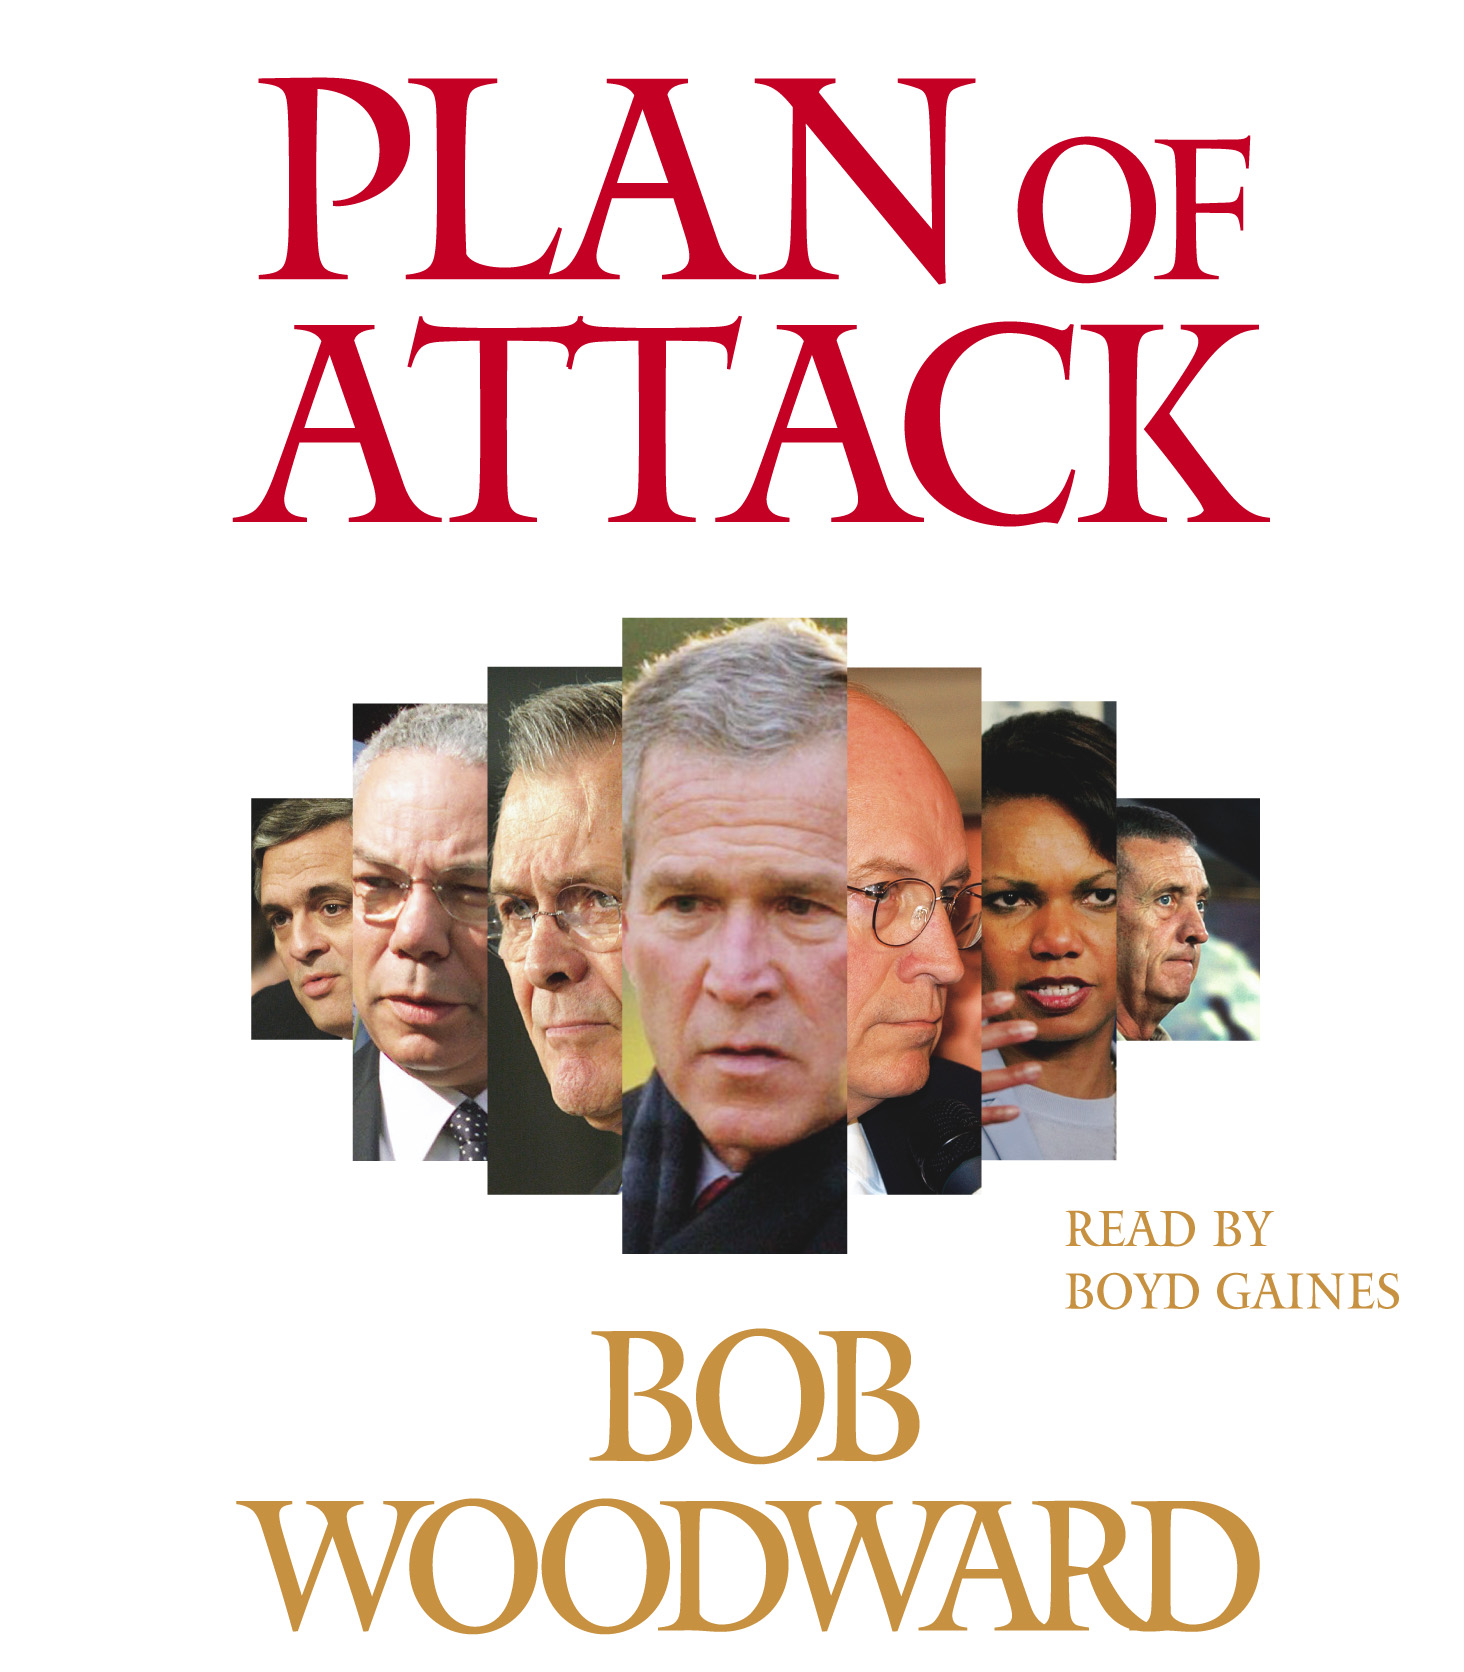 an analysis of plan of attack by journalist bob woodward Journalist bob woodward questions obama's leadership at campus event said pulitzer prize-winning journalist bob woodward to a crowd of nearly 600 amherst college students as reported in woodward's book plan of attack.